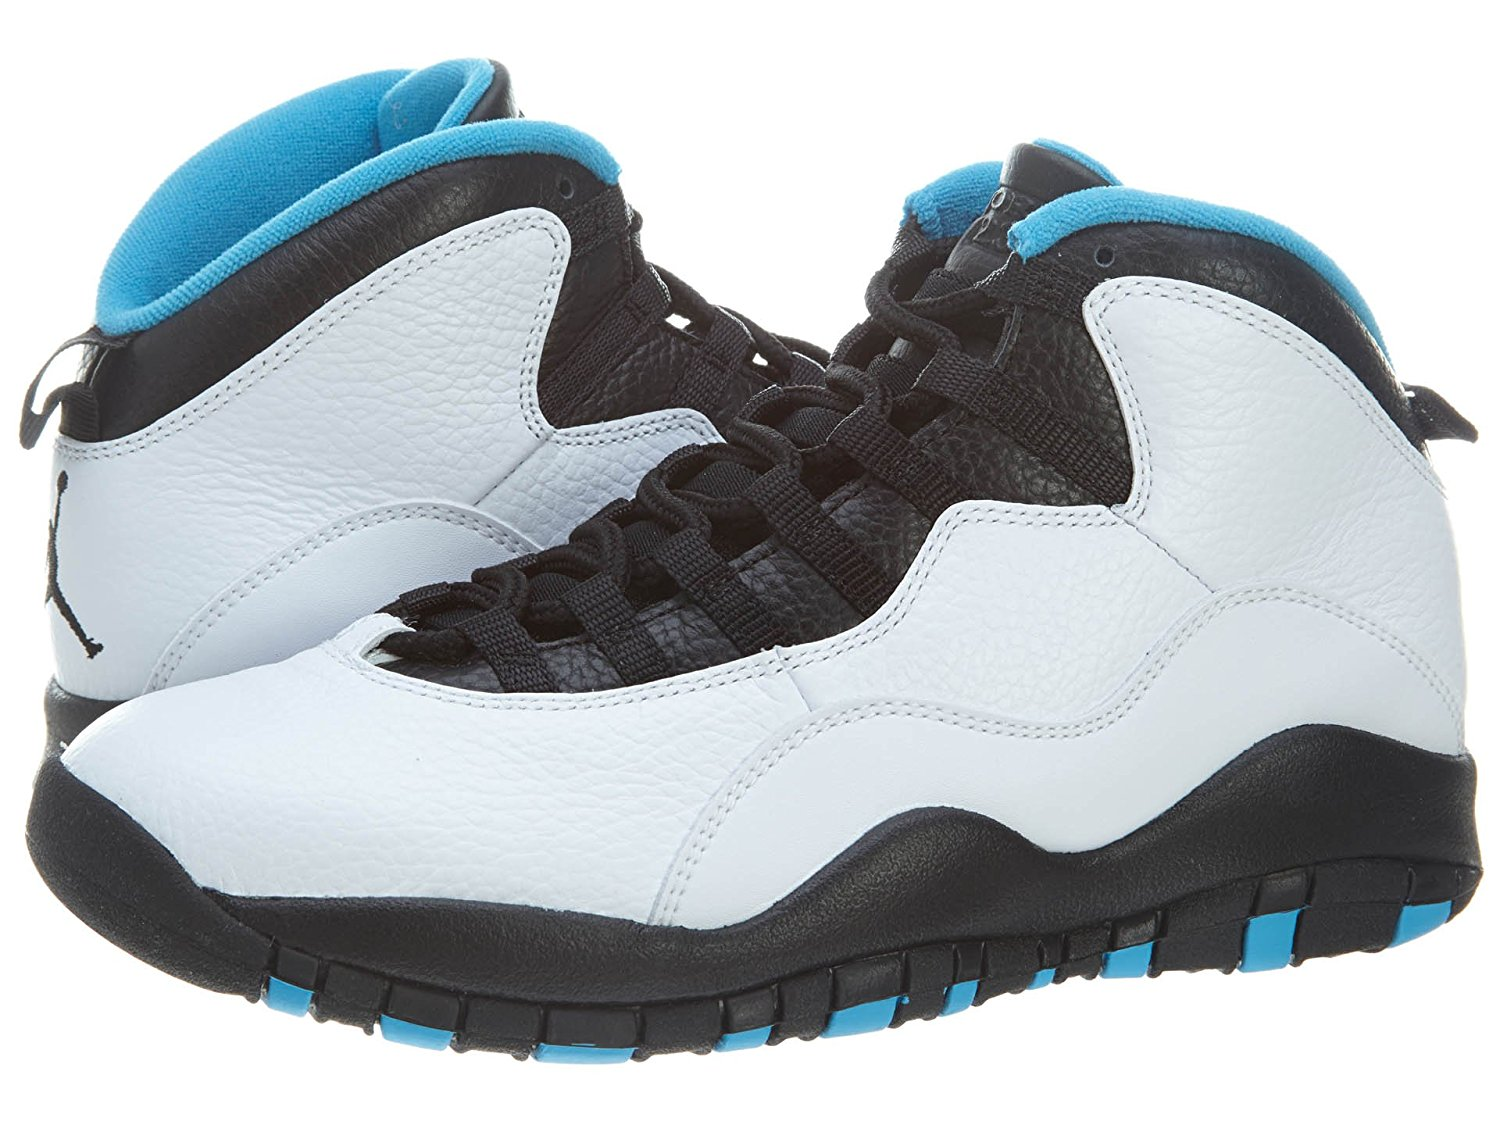 698bbbab102999 Nike Mens Air Jordan Retro 10 White Dark Powder Blue-Black Leather  Basketball Shoes